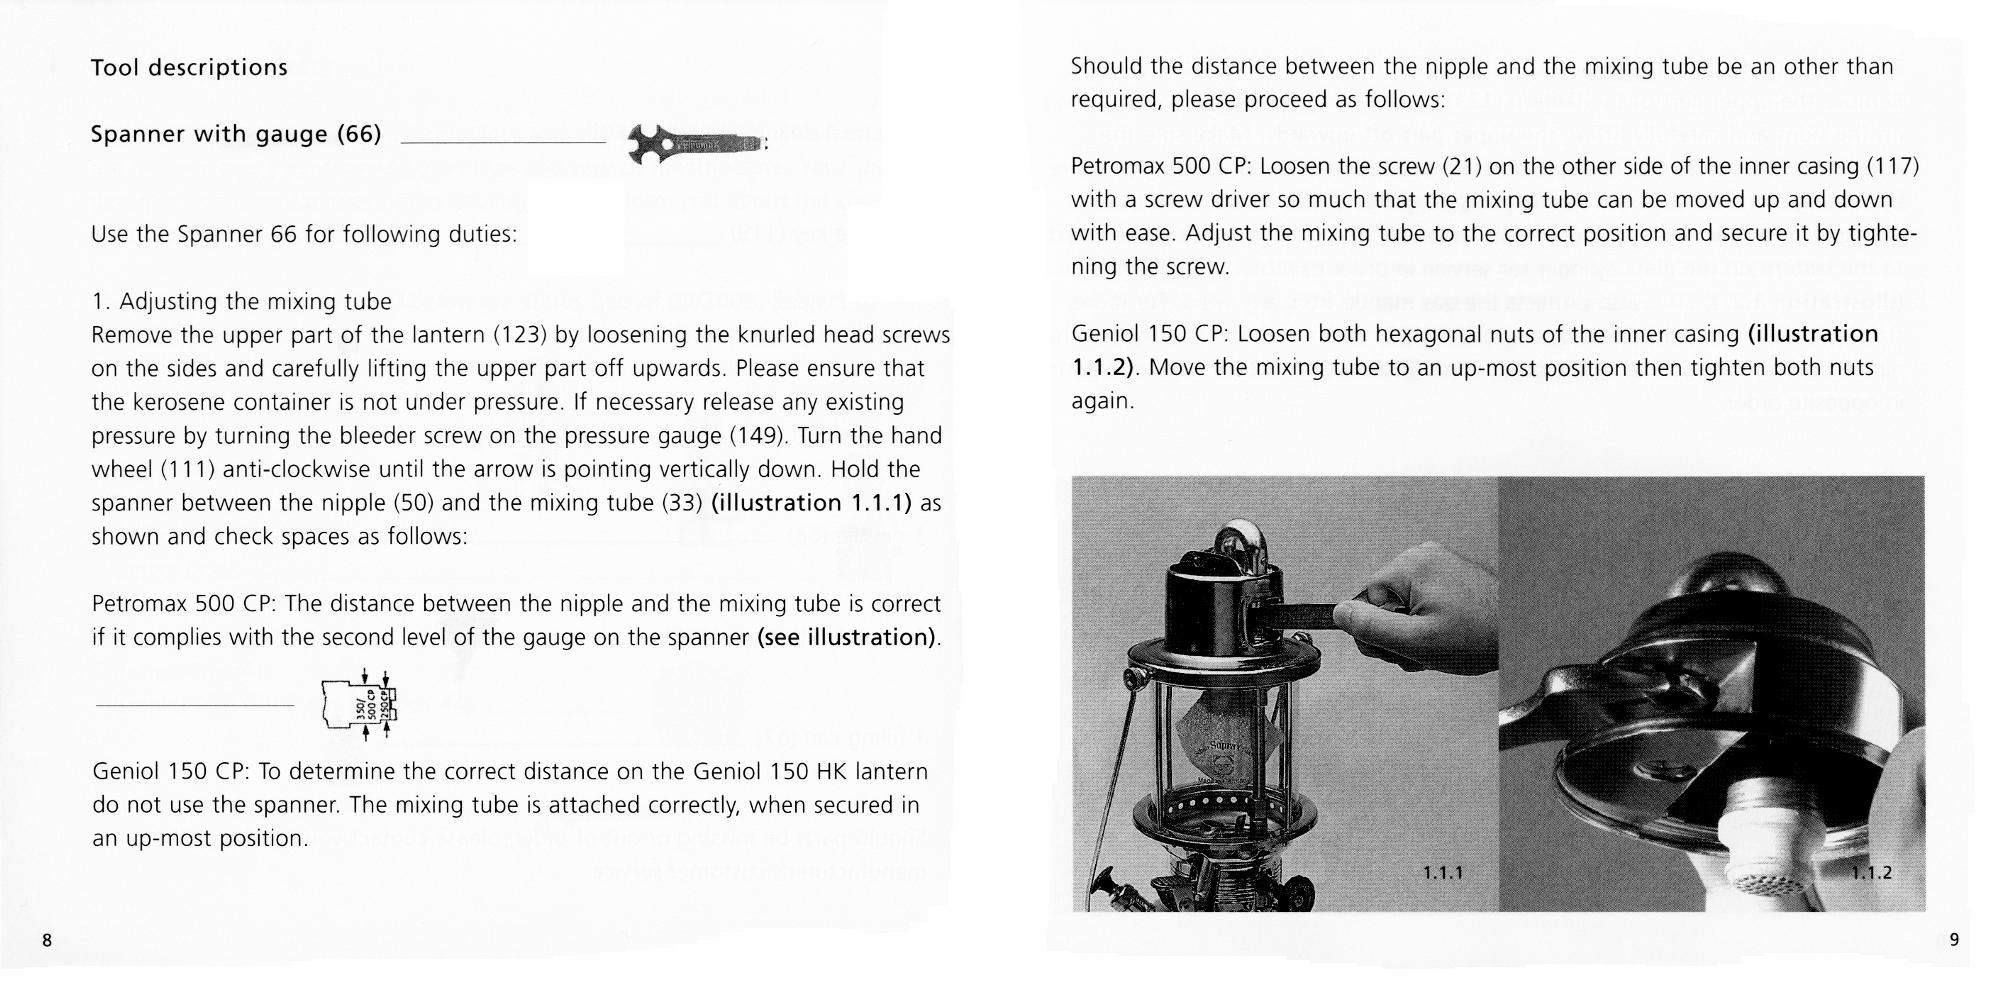 Petromax Instructions page 08 and 09